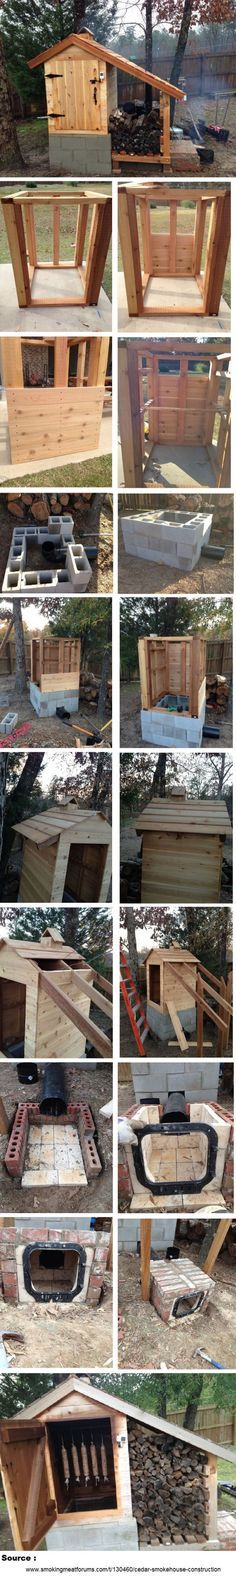 learn how to build a smokehouse with this awesome project from smoking meat forum user - Meat Smokehouse Plans